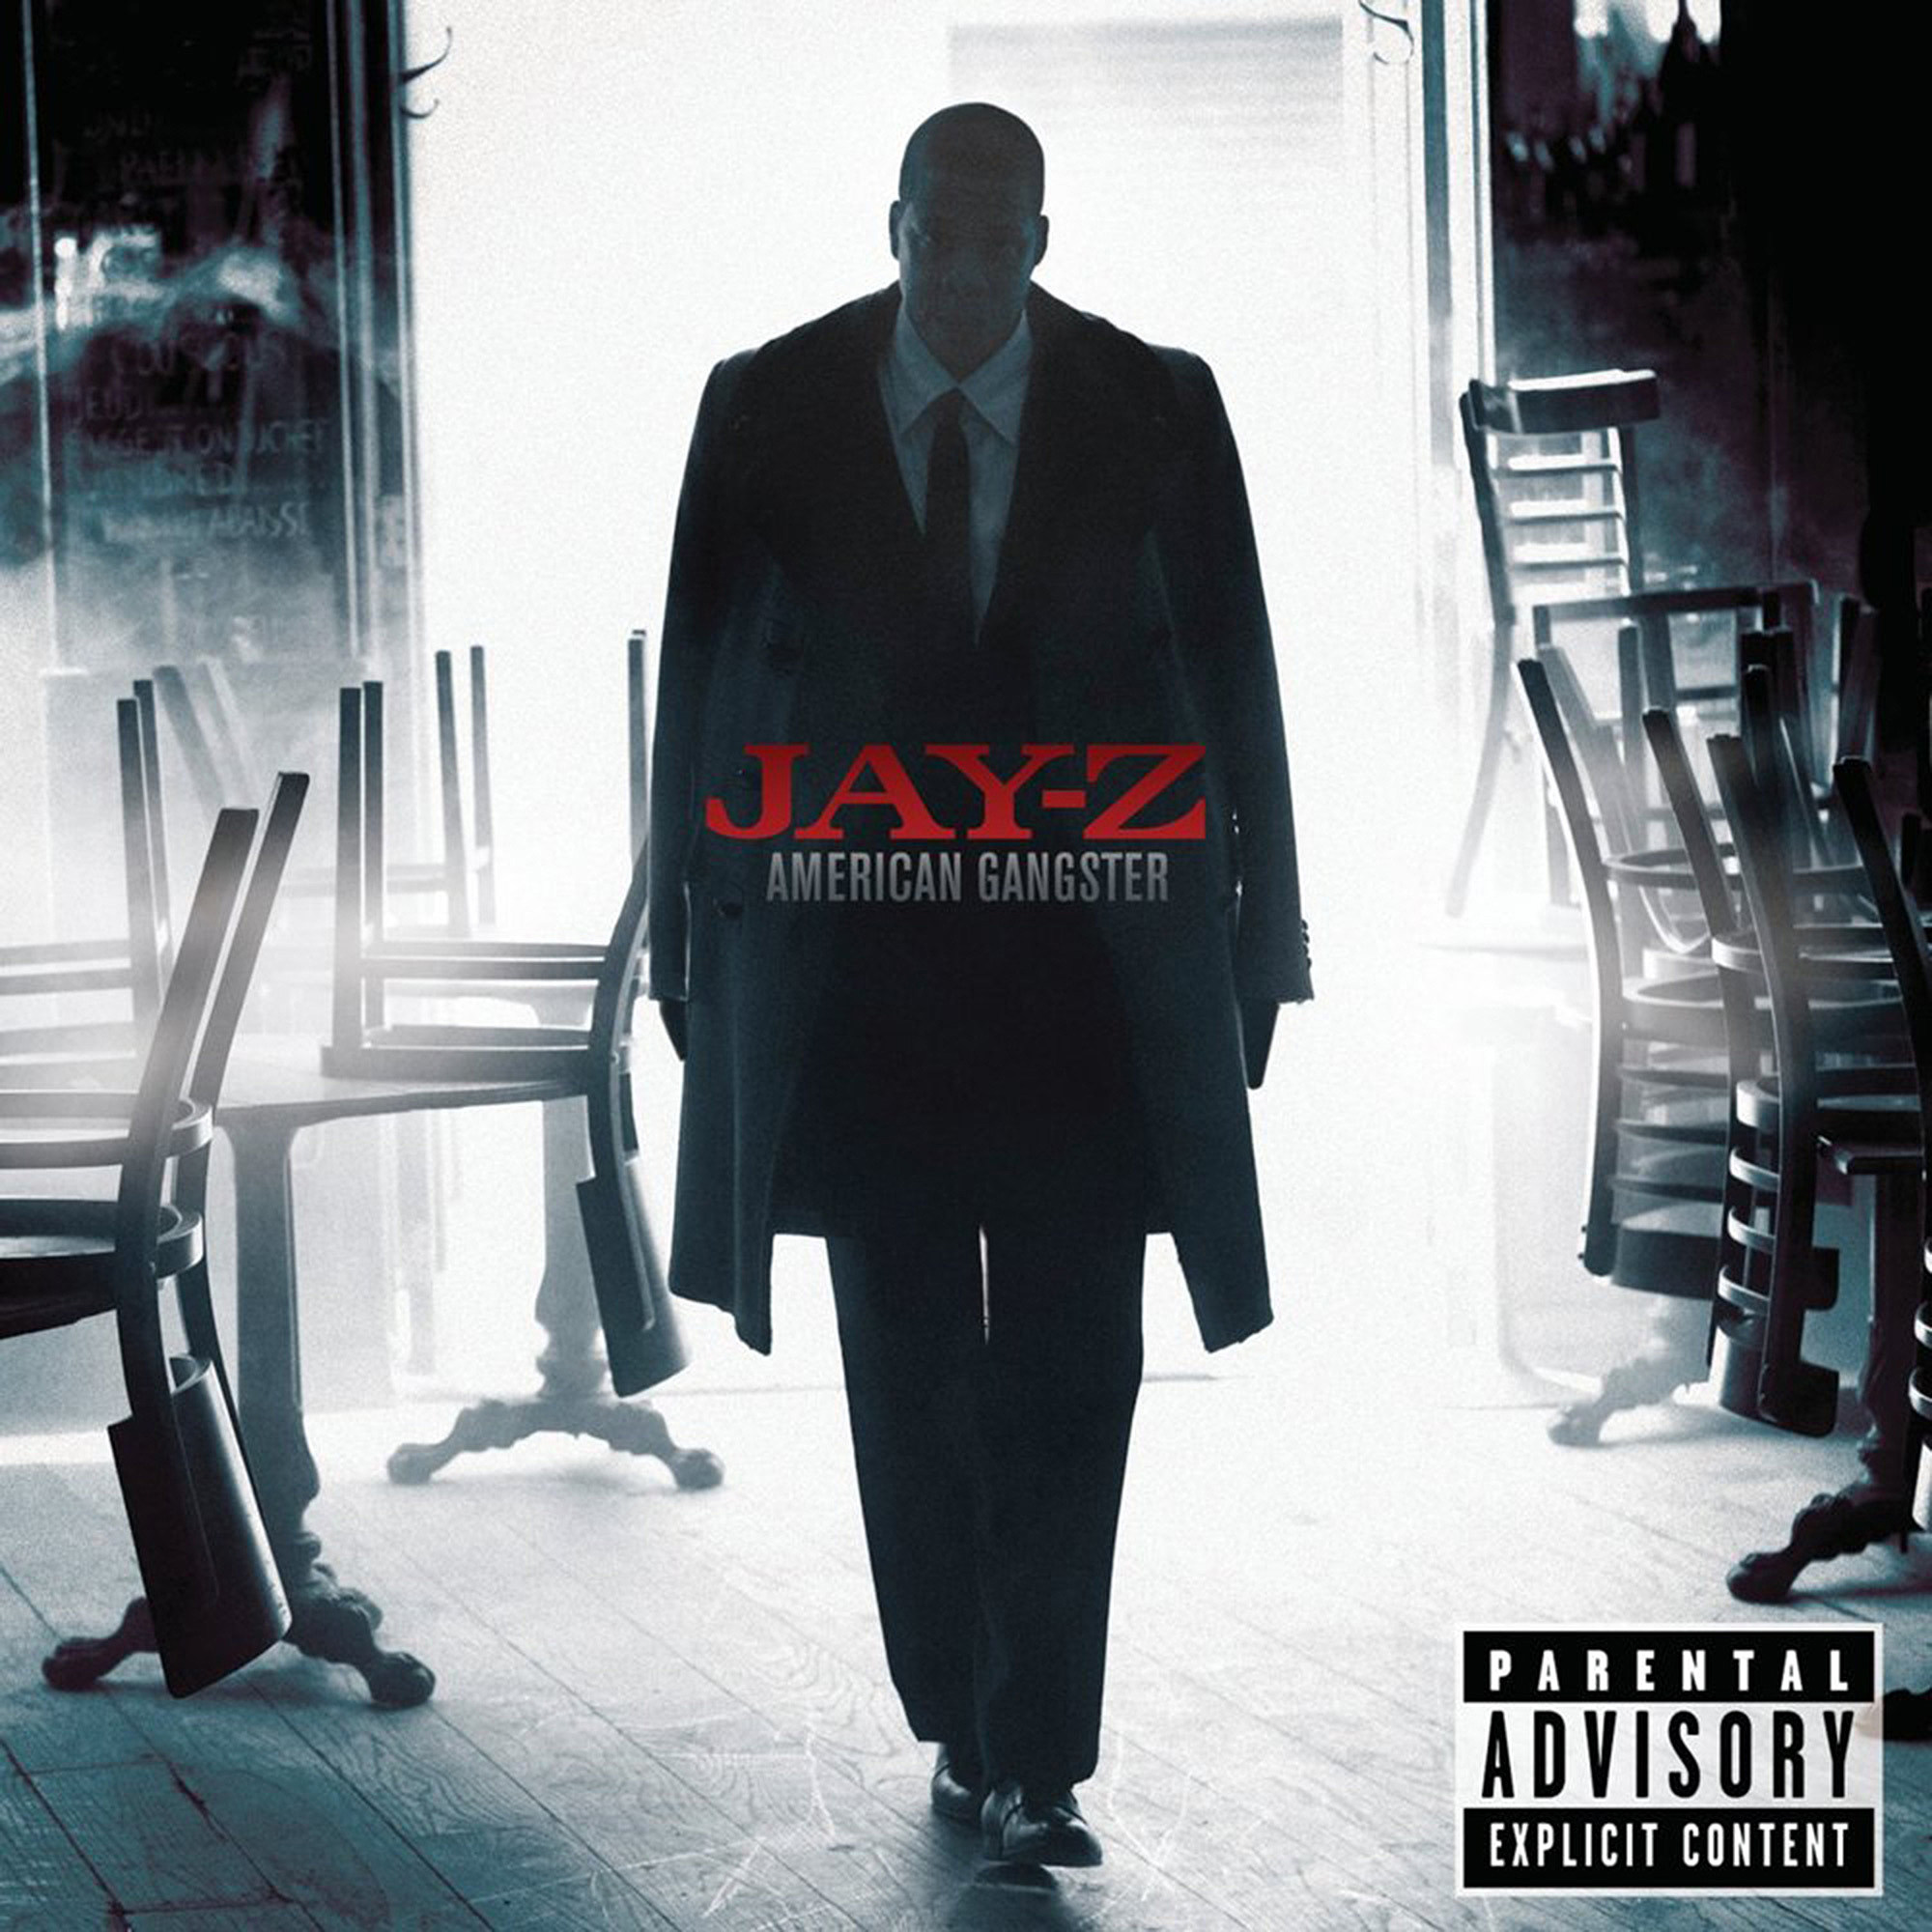 Jay z adds some of his music back to spotify update removed again malvernweather Image collections